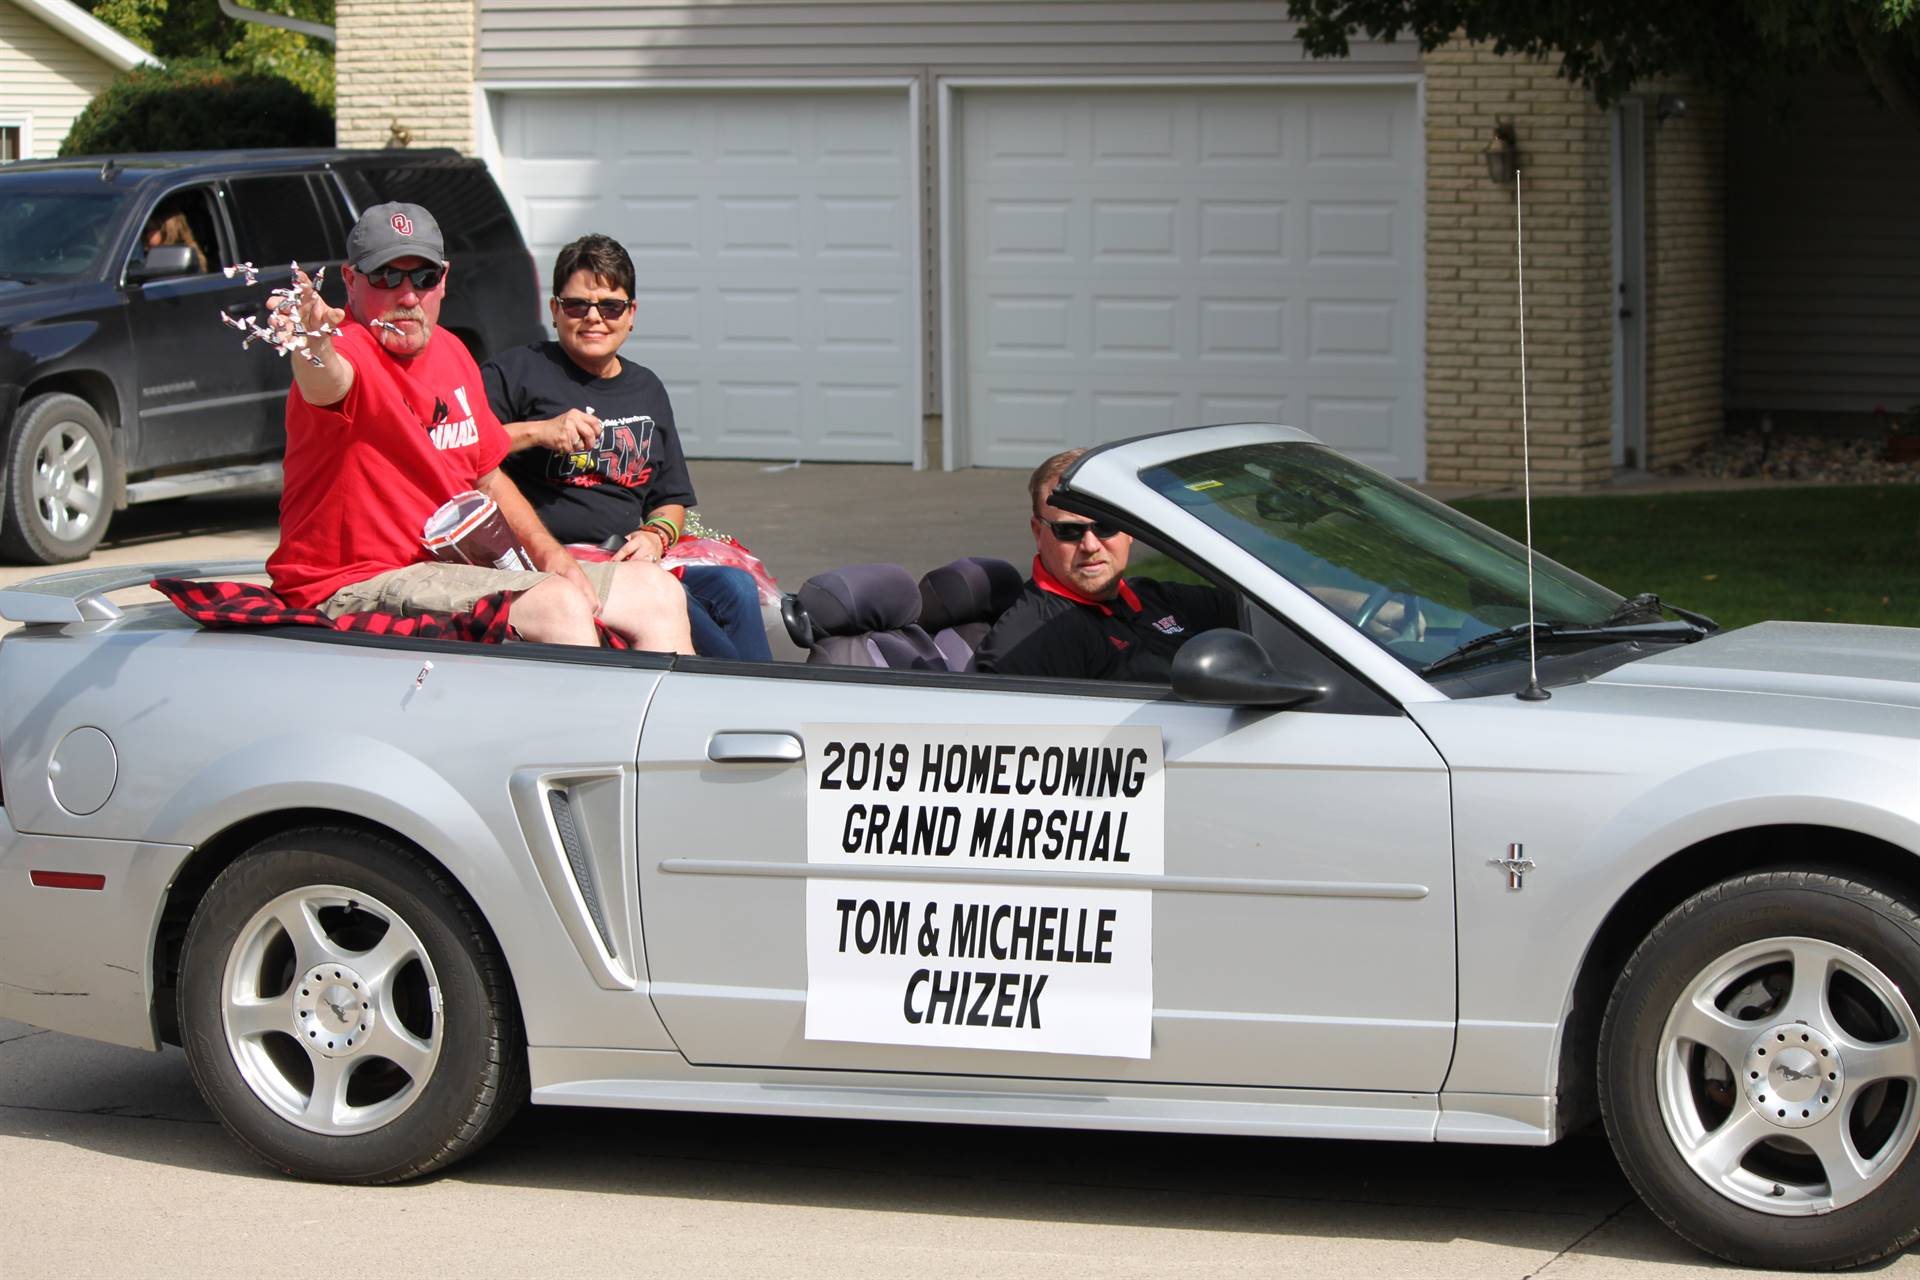 convertible in parade with grand marshal